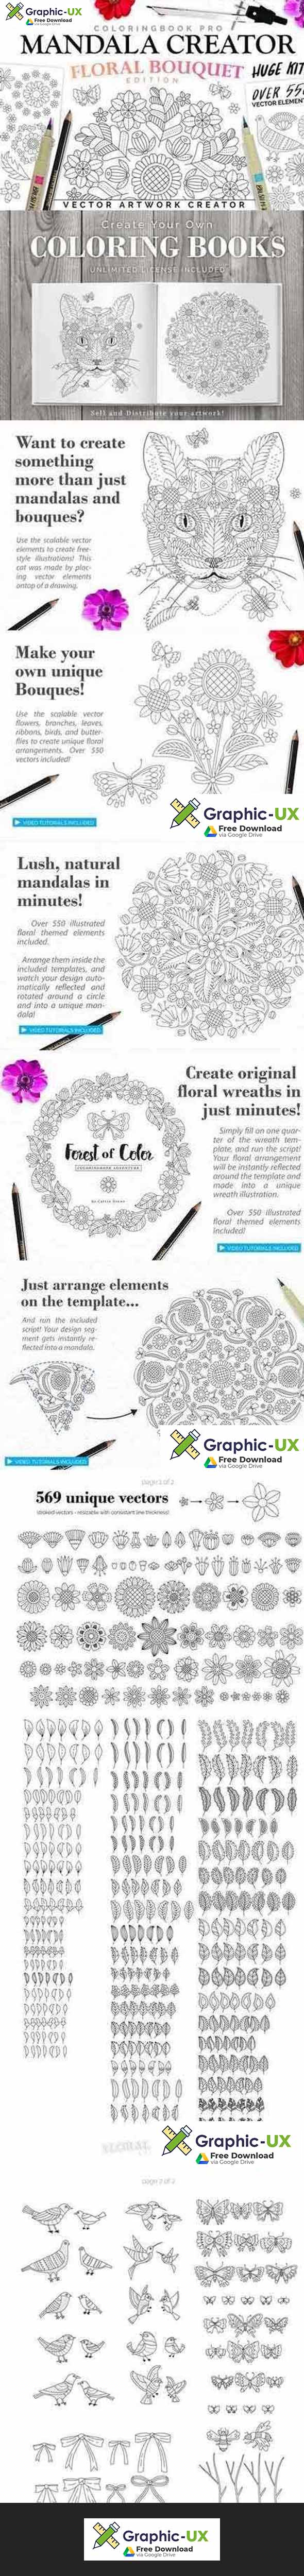 Floral Bouquet Mandala Creator free – GraphicUX